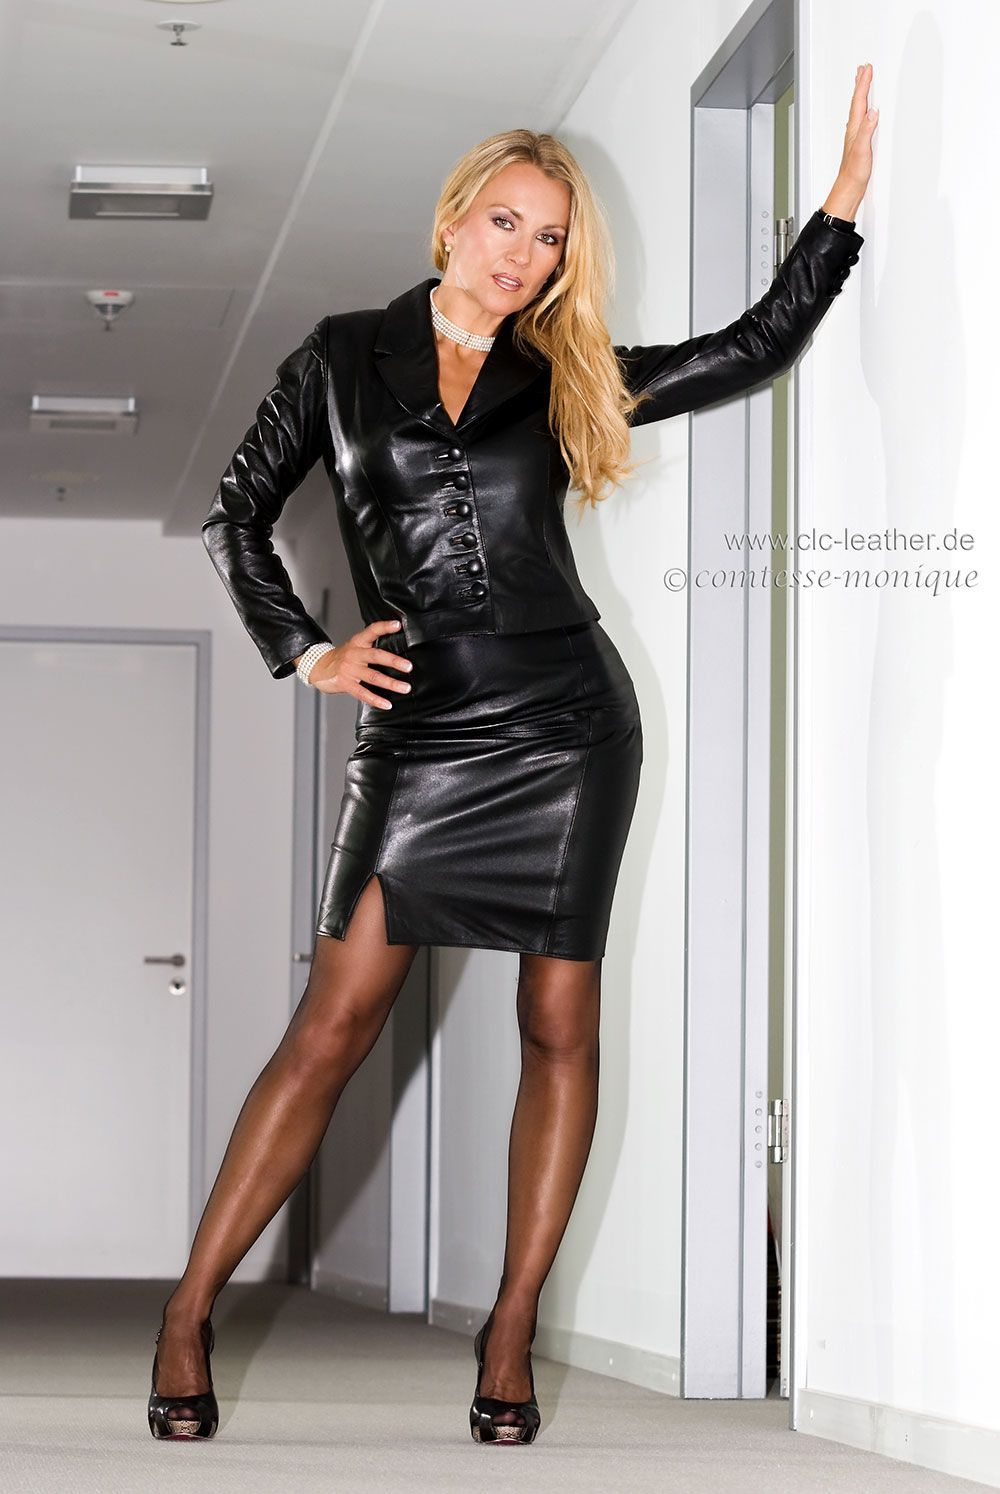 In lady leather mature